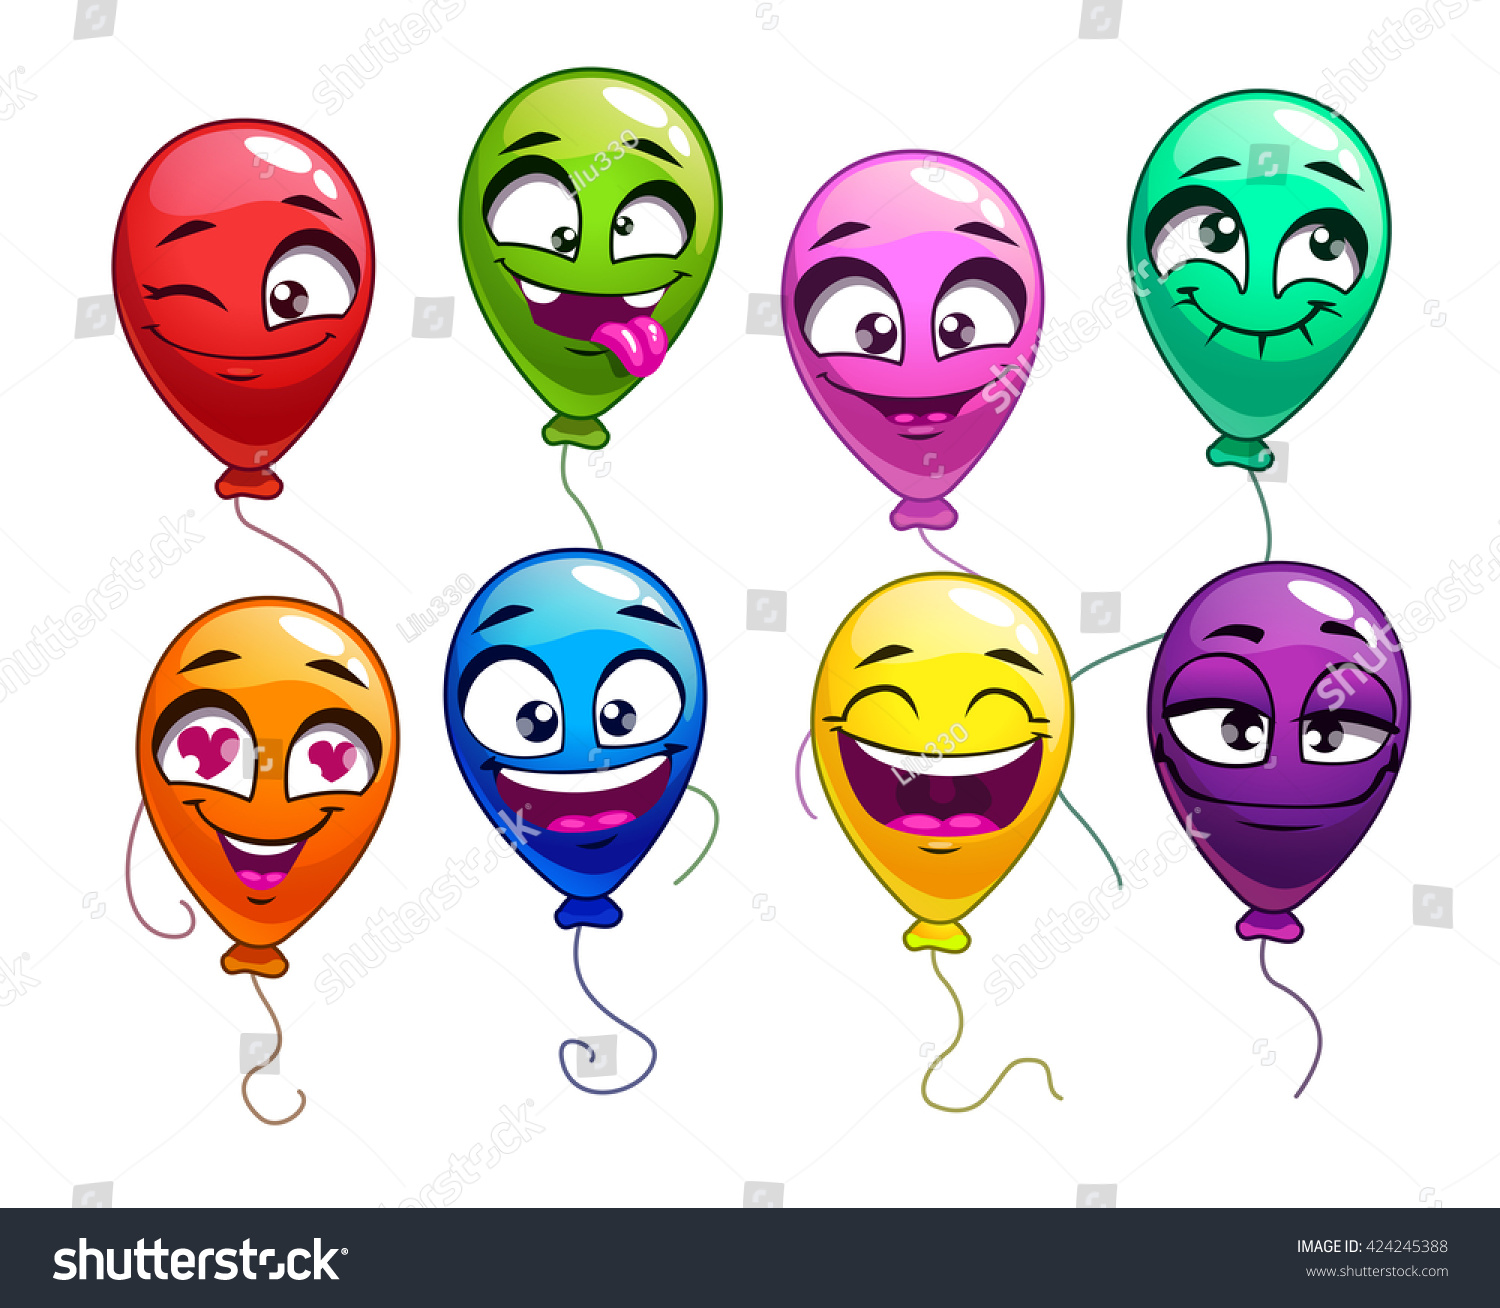 Funny balloon faces - Funny Cartoon Balloons With Comic Faces Cute Bright Balloon Characters Set Vector Colorful Balloons